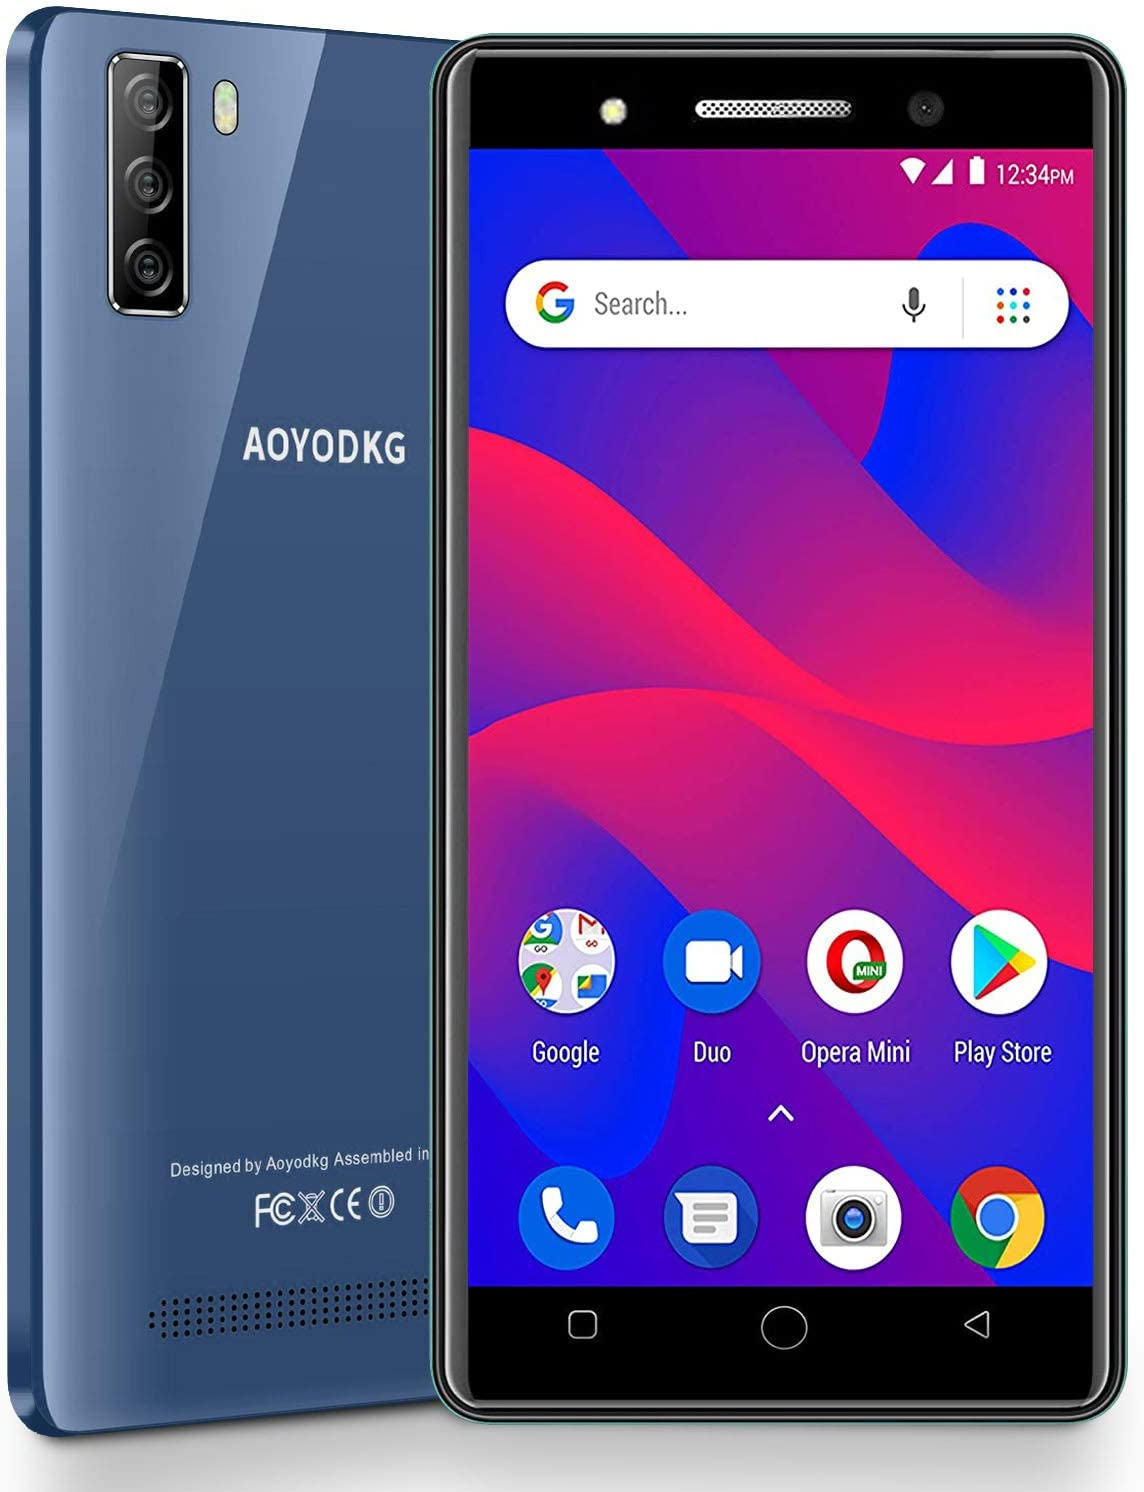 Moviles Libres 4G Android 9.0 Pie, A10+(2020) 16GB ROM/128GB ...